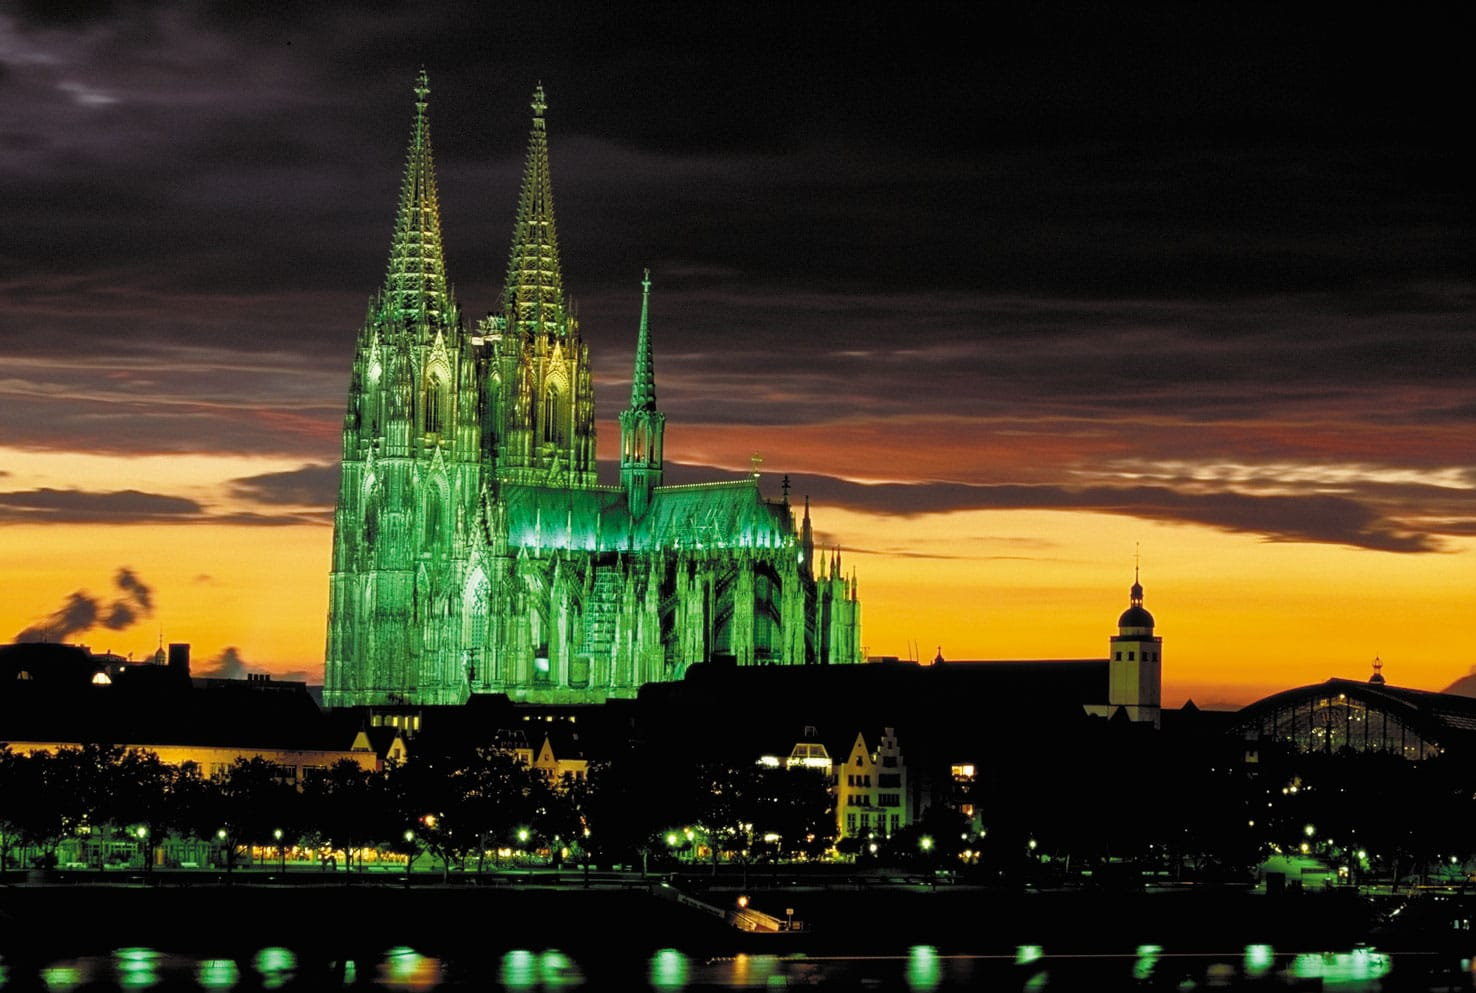 Domul din Koln, Germania